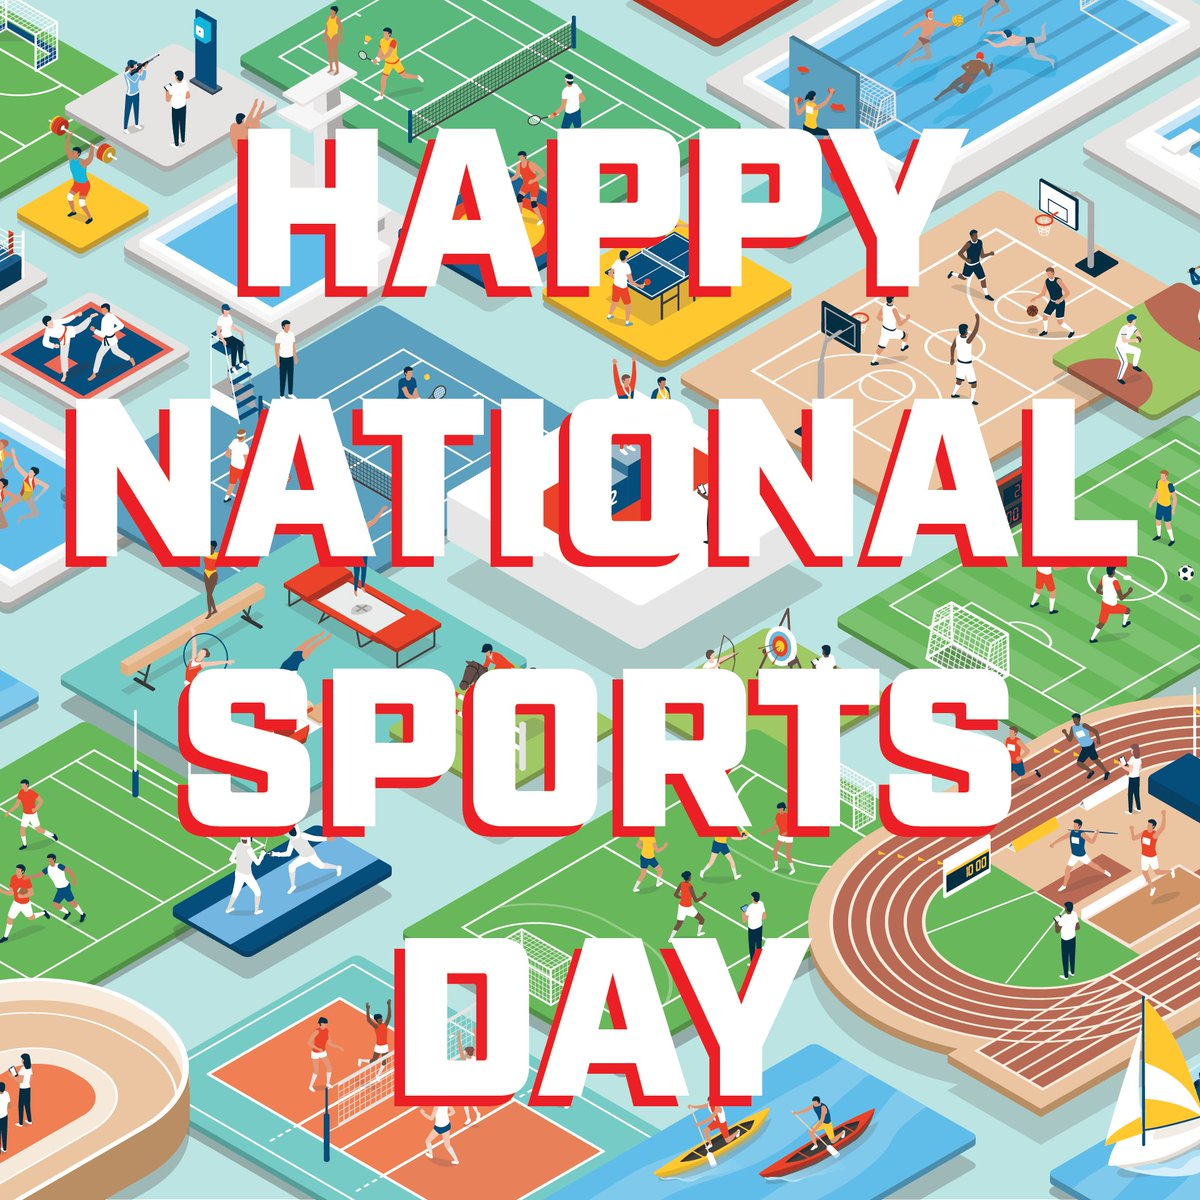 Sports is so important to our lives. It helps us stay strong and active. It teaches us about bravery and cooperation. It shows us that we can achieve new things. On top of all of that, it helps us make friends! Happy #NationalSportsDay! https://t.co/OLuXEAn0xP